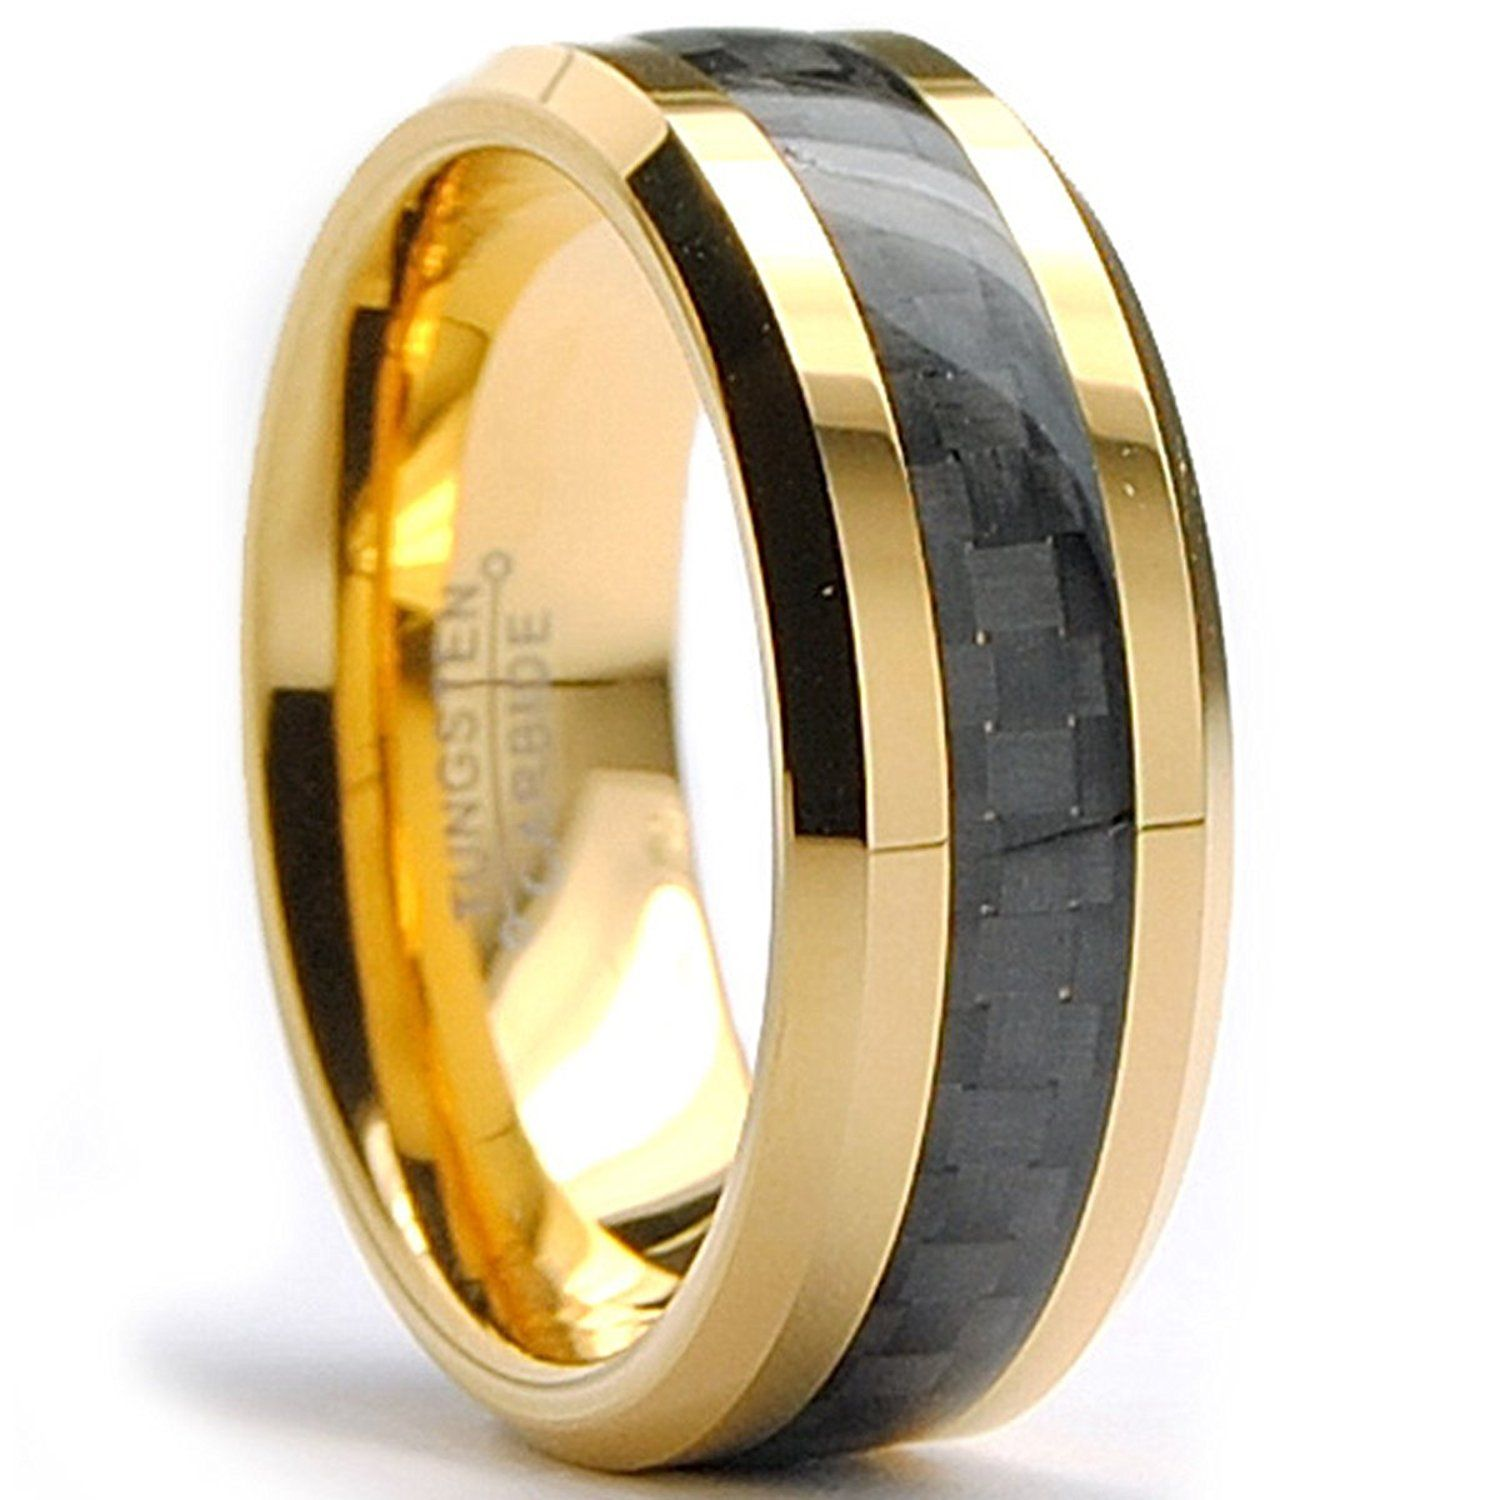 Ultimate Metals Co. 8MM Men's Gold Plated Tungsten Carbide